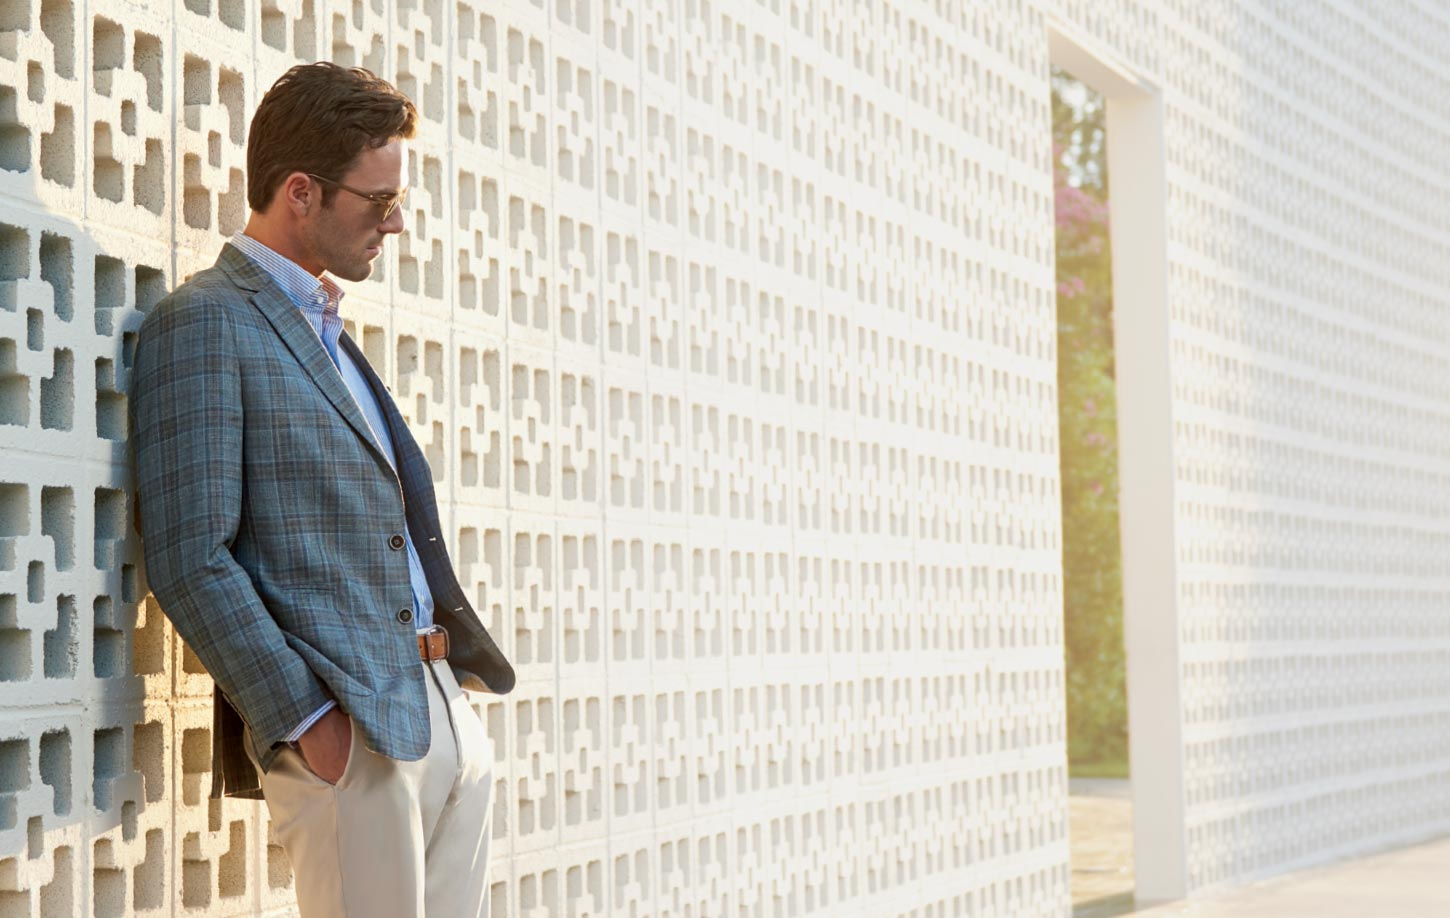 Peter Millar Image Leaning Against Wall In Sun